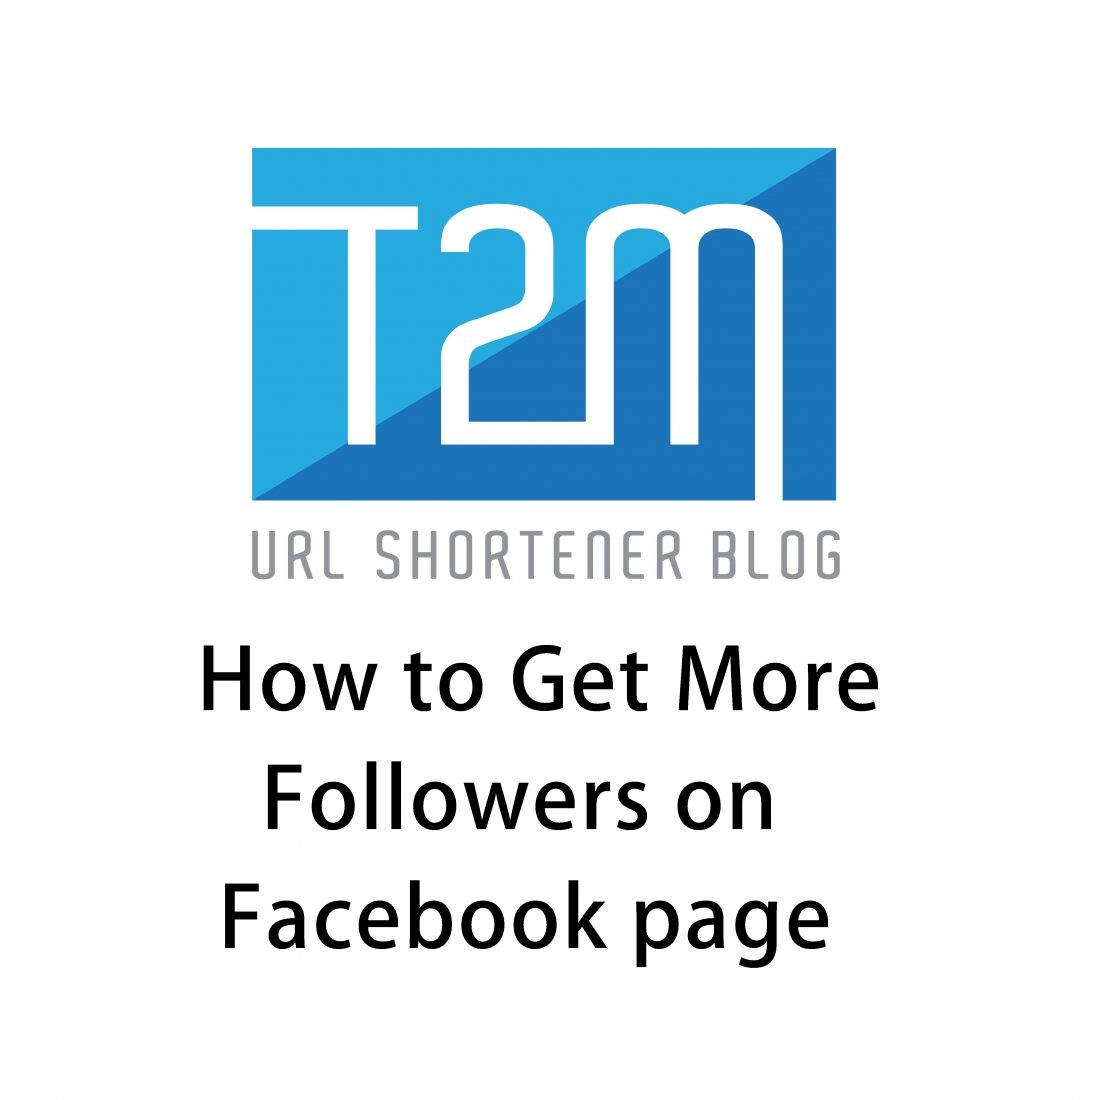 How to Get More Followers on Facebook page?